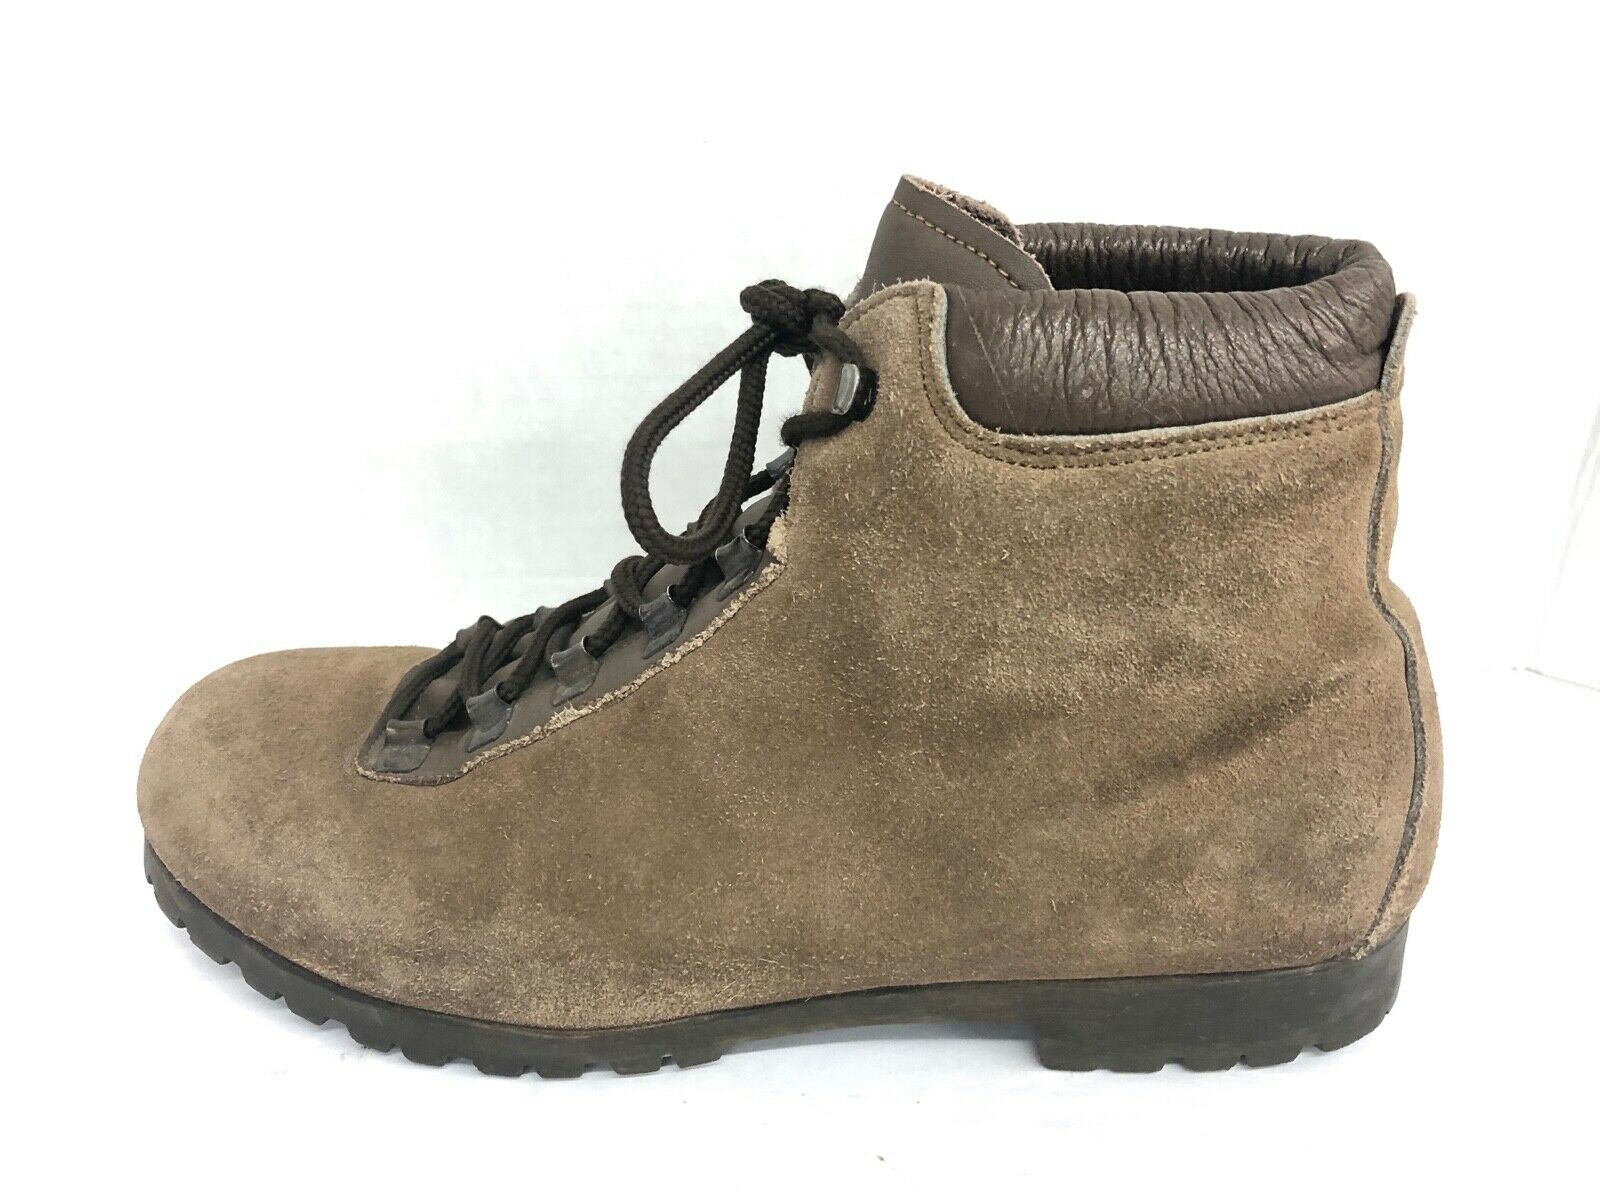 Vintage Italian  Brown Suede Hiking Boots Sz 9.5 M STYLE 6035 Women's